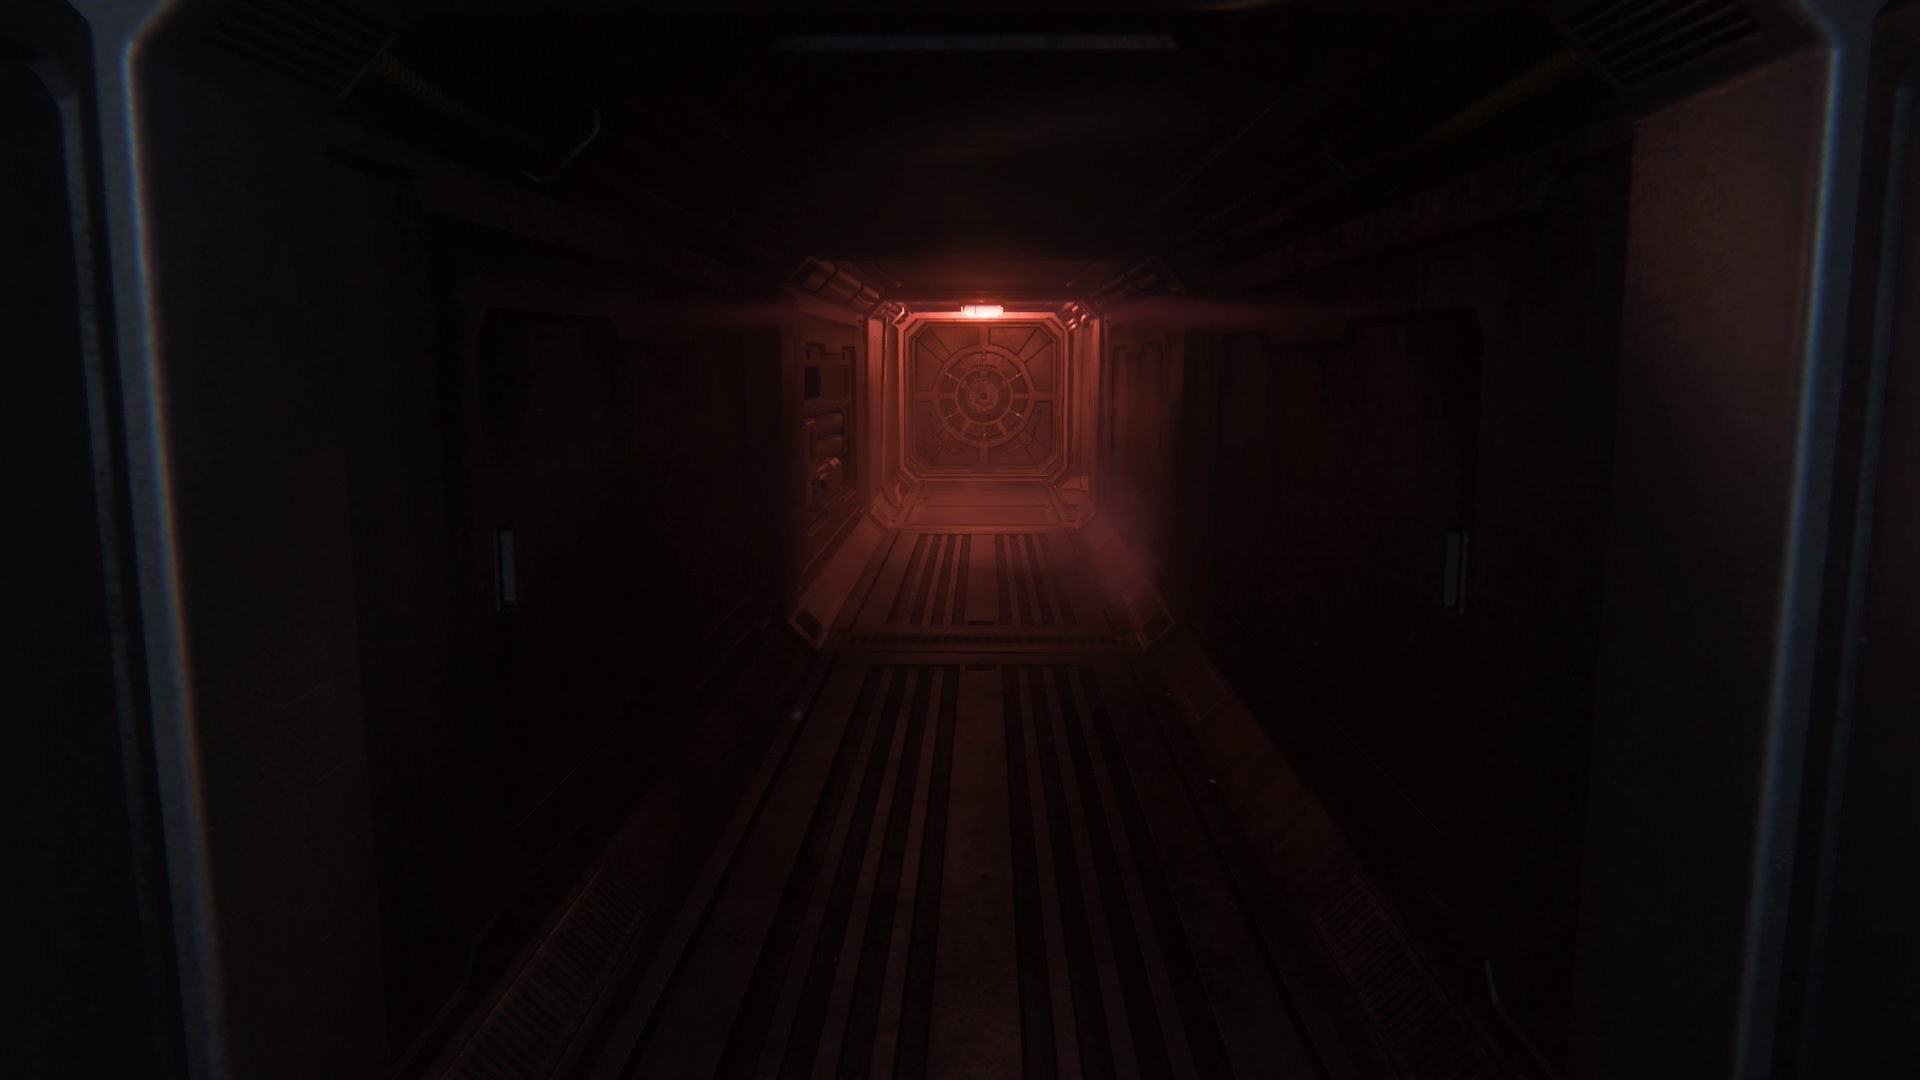 There is something particularly disturbing about being in the vents and knowing the alien is there too.